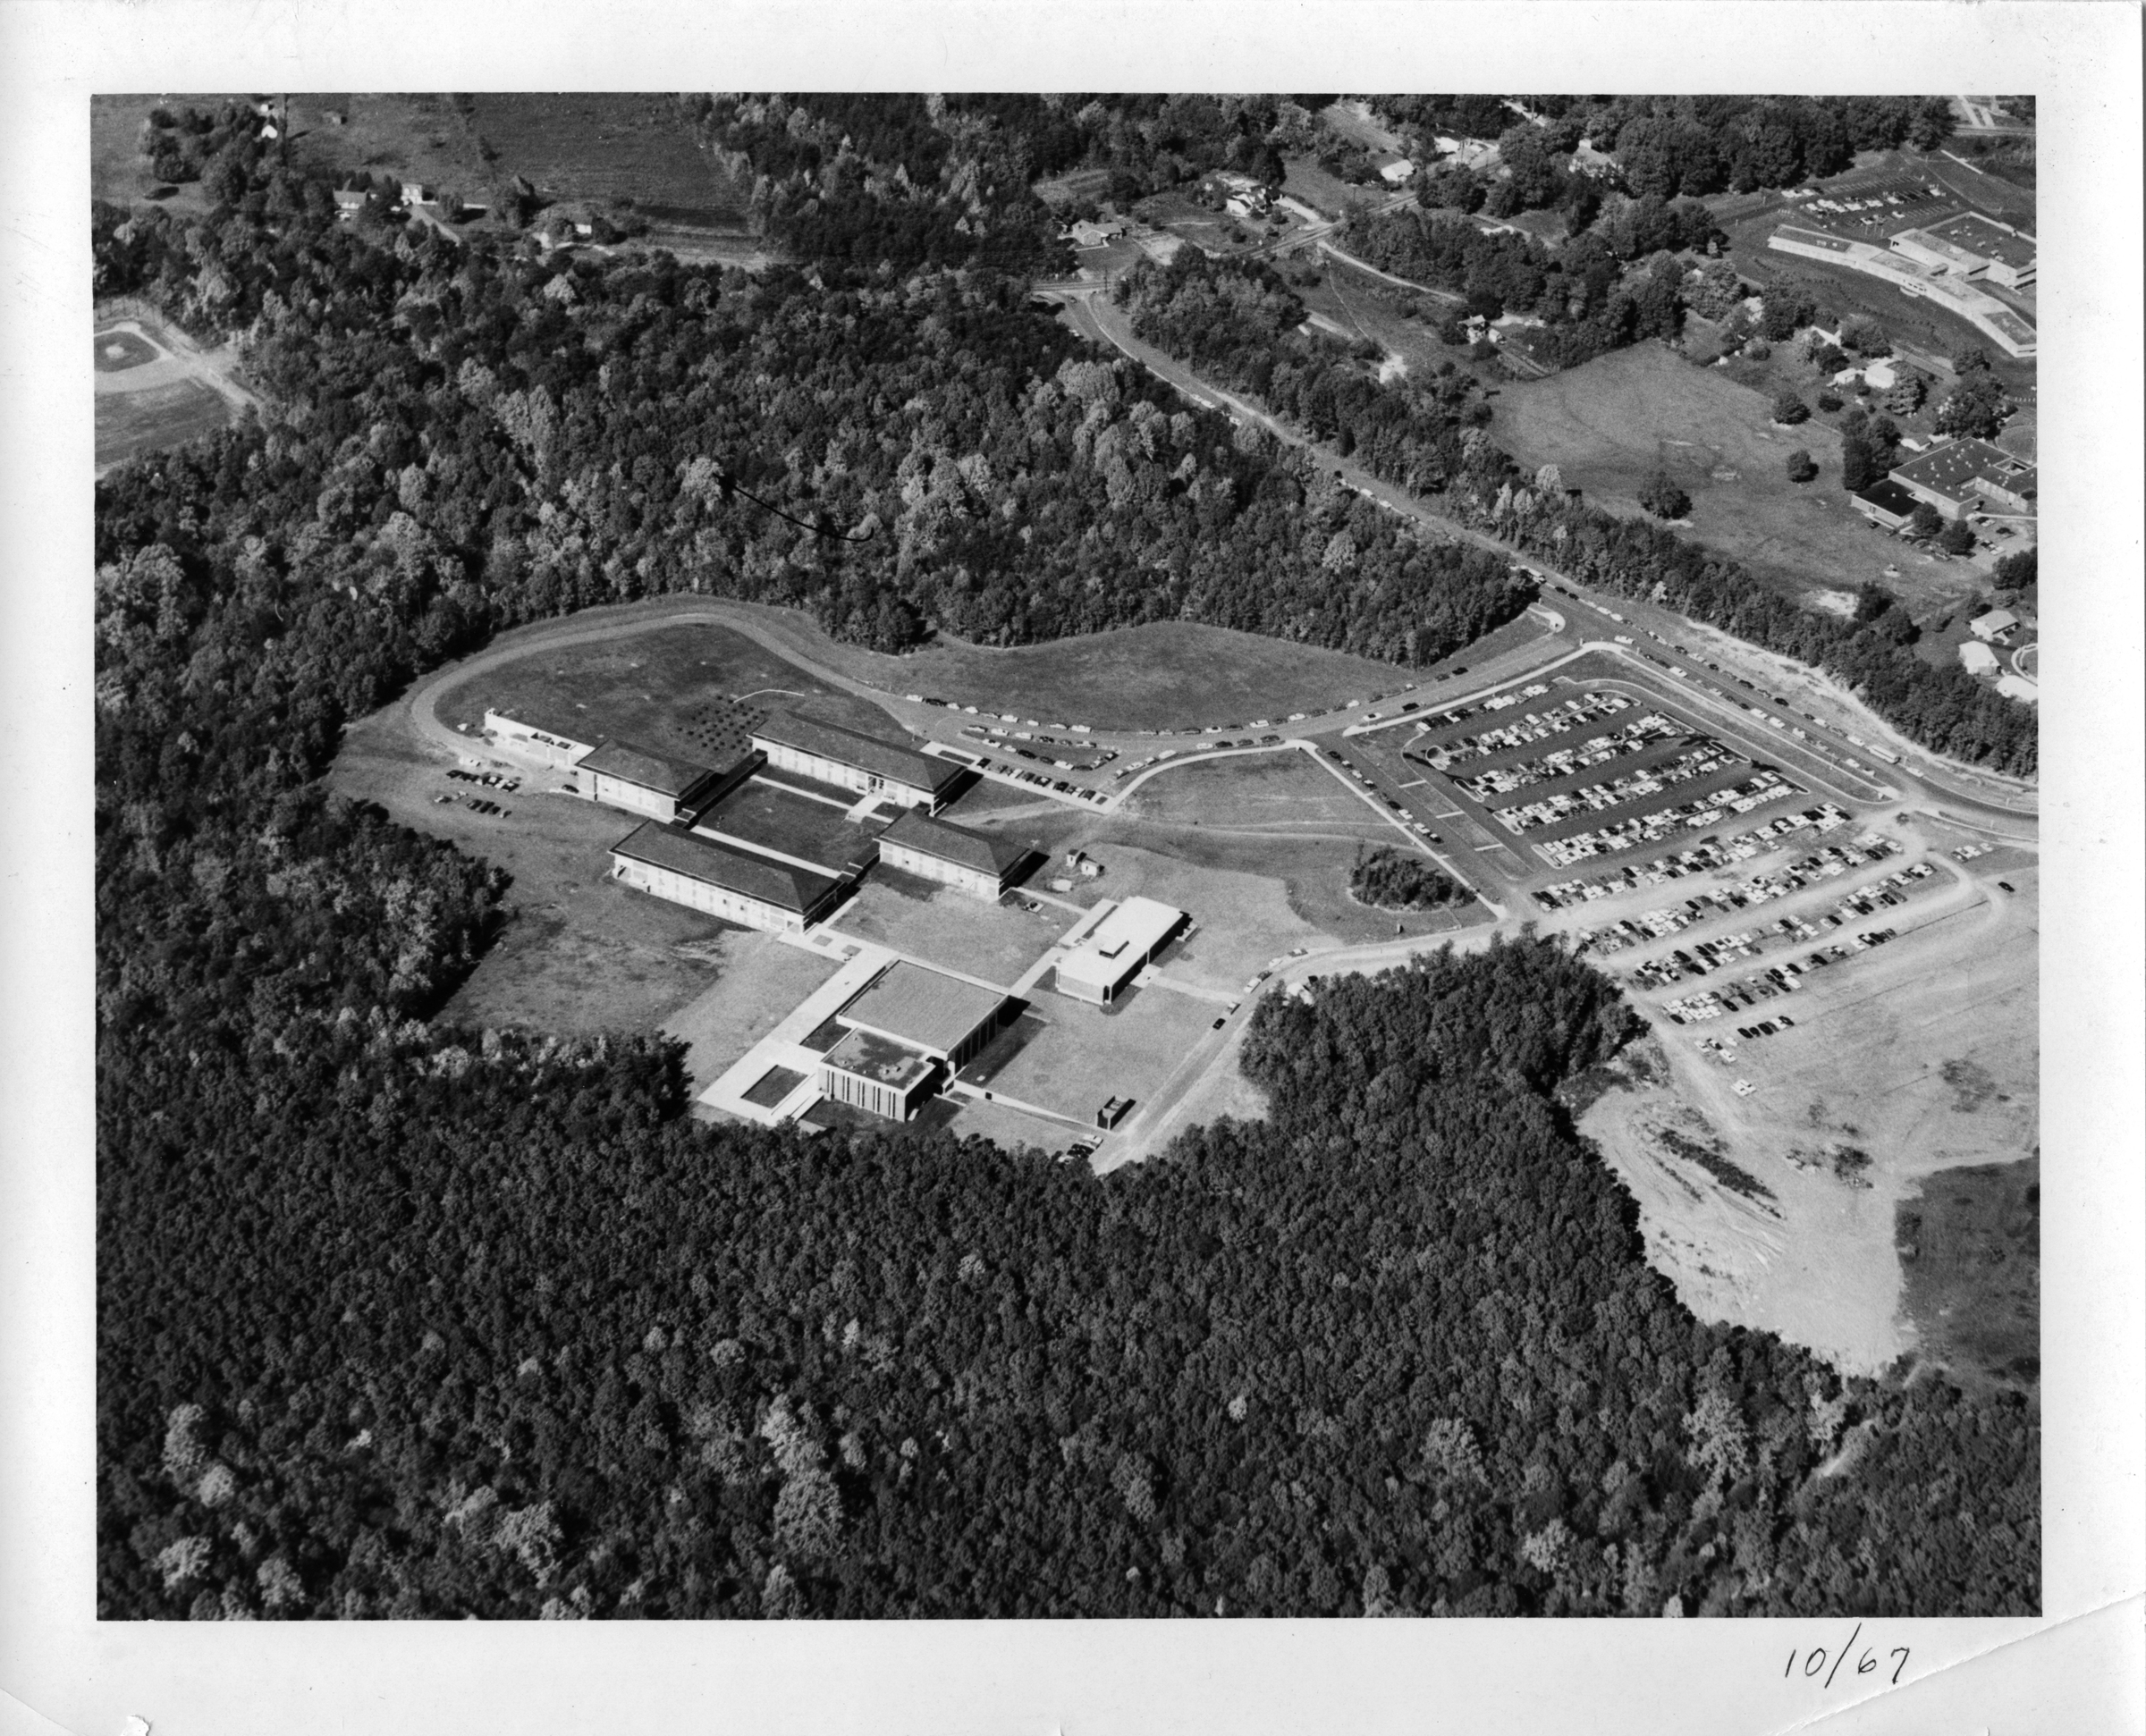 George Mason College, Fairfax campus, 1967, aerial photograph looking north